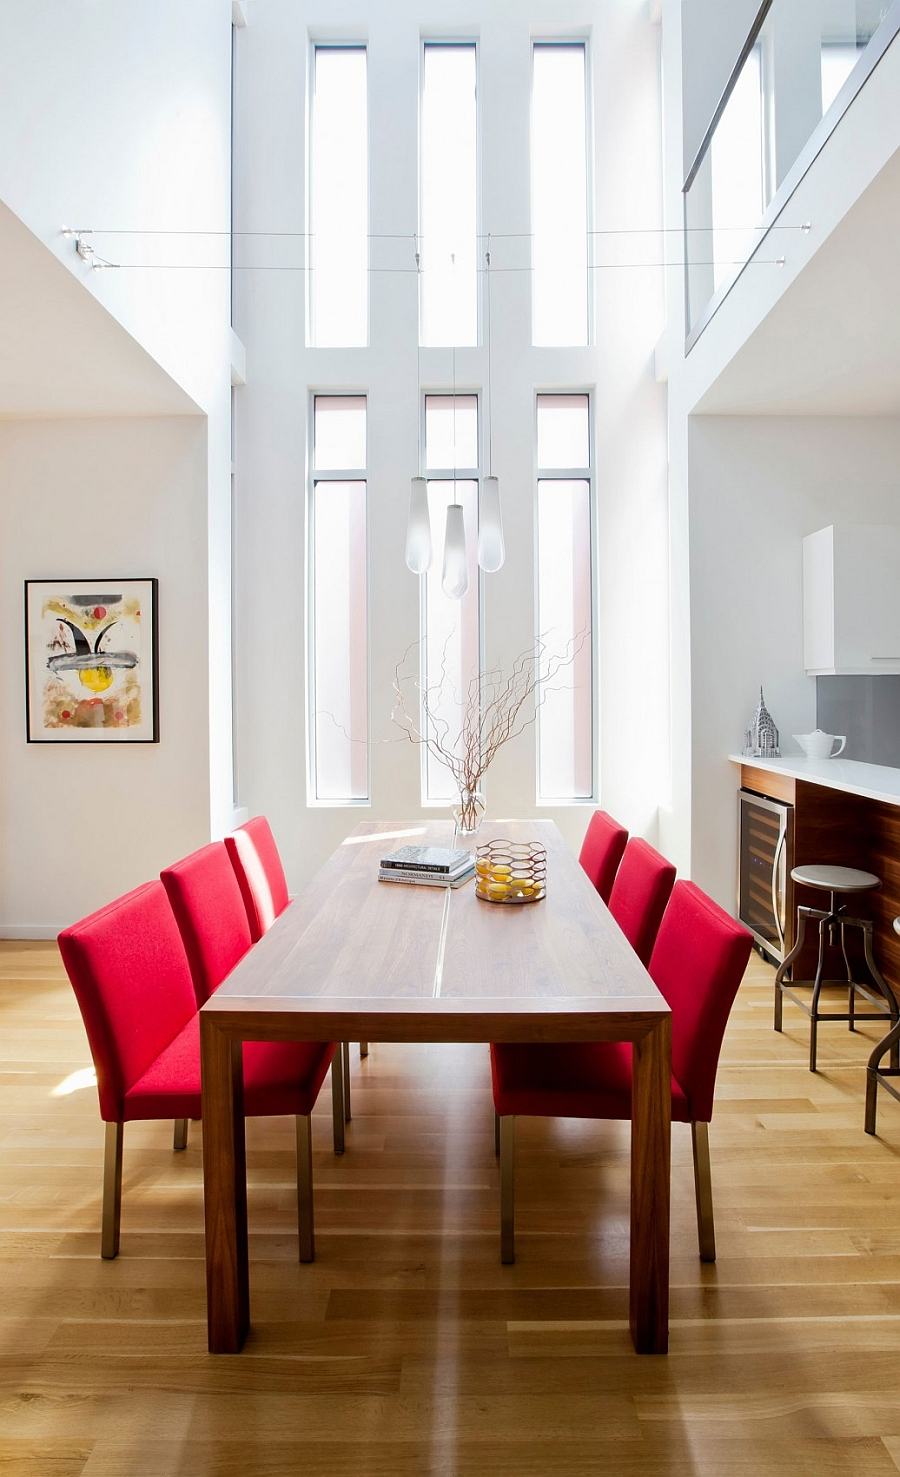 Beautiful dining space combines art-deco style with a more contemporary appeal